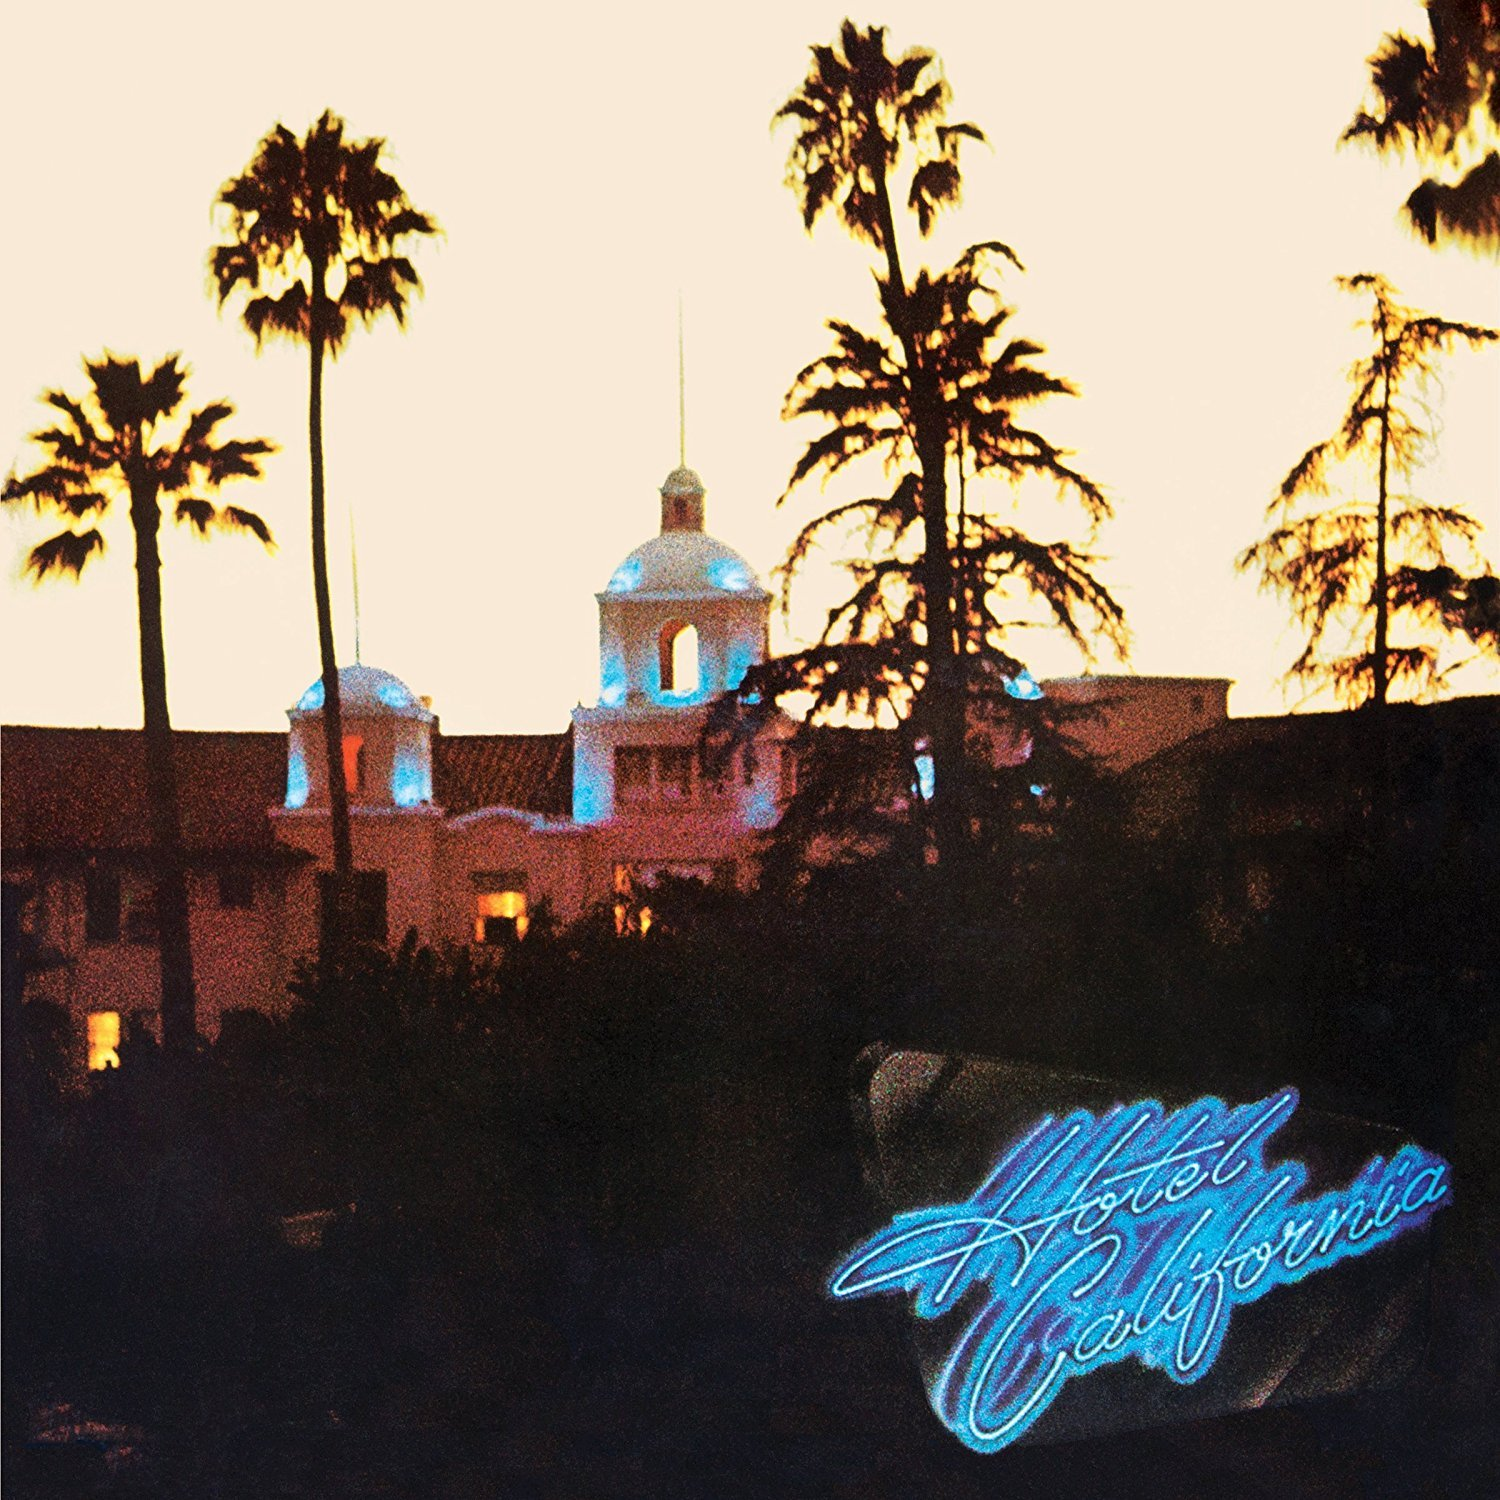 HOTEL CALIFORNIA (DELUXE EDITION) [2CD+BLURAY] (40TH ANNIVERSARY, 11X11 HARDBOUND BOOK, 10 PREVIOUSLY UNRELEASED LIVE RECORDINGS AND HI-RES/5.1 MIXES)